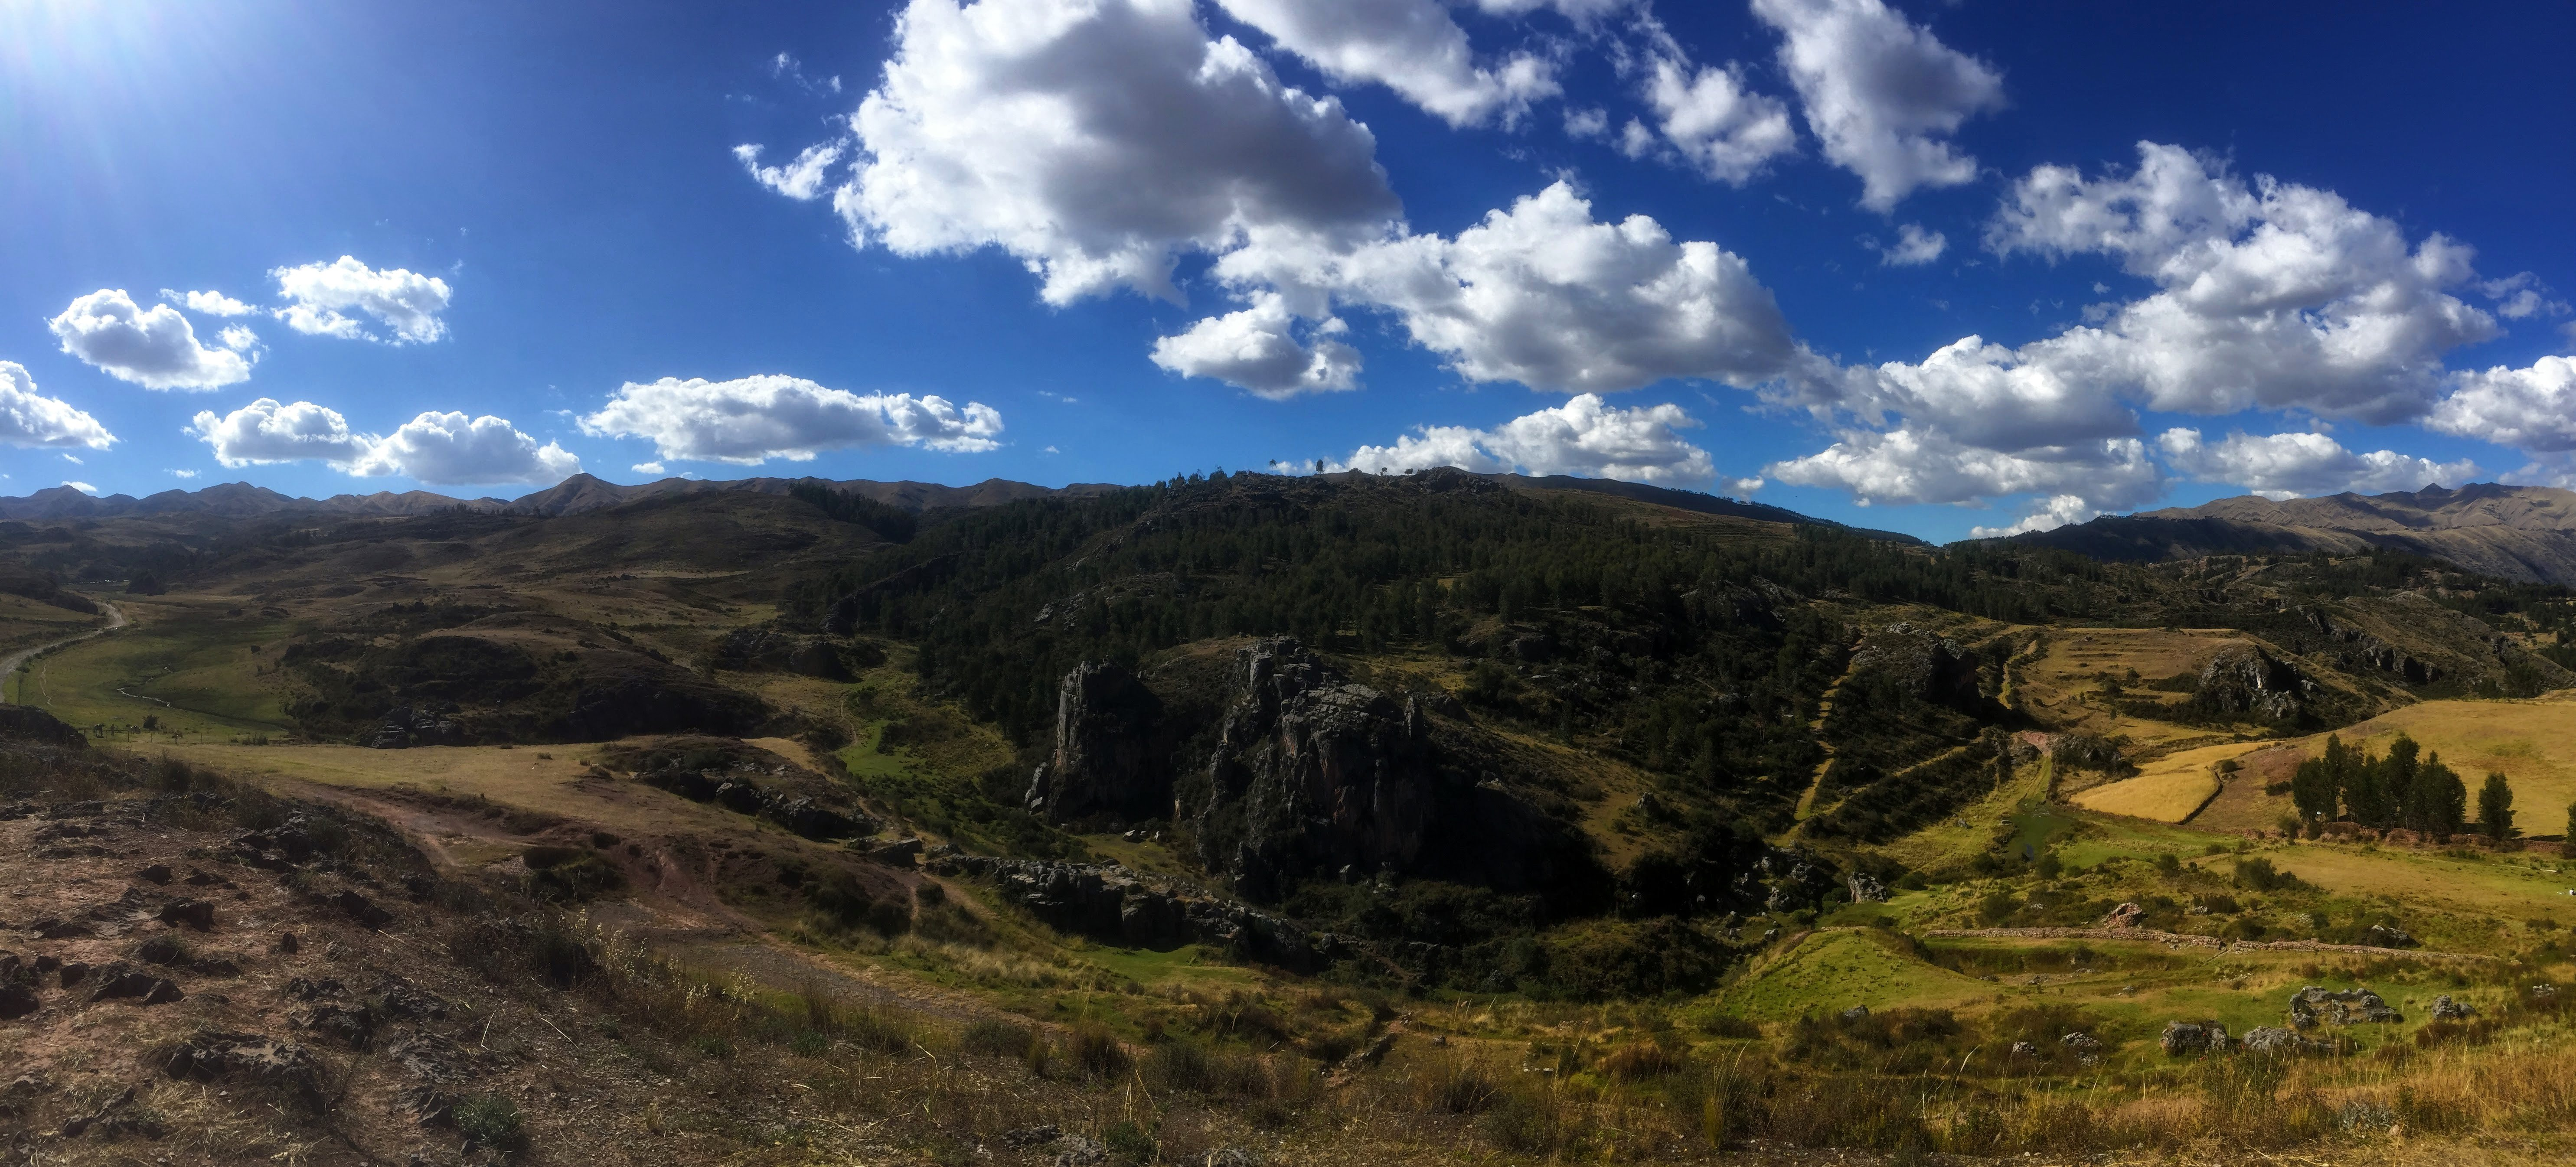 temple of the moon hike in cusco